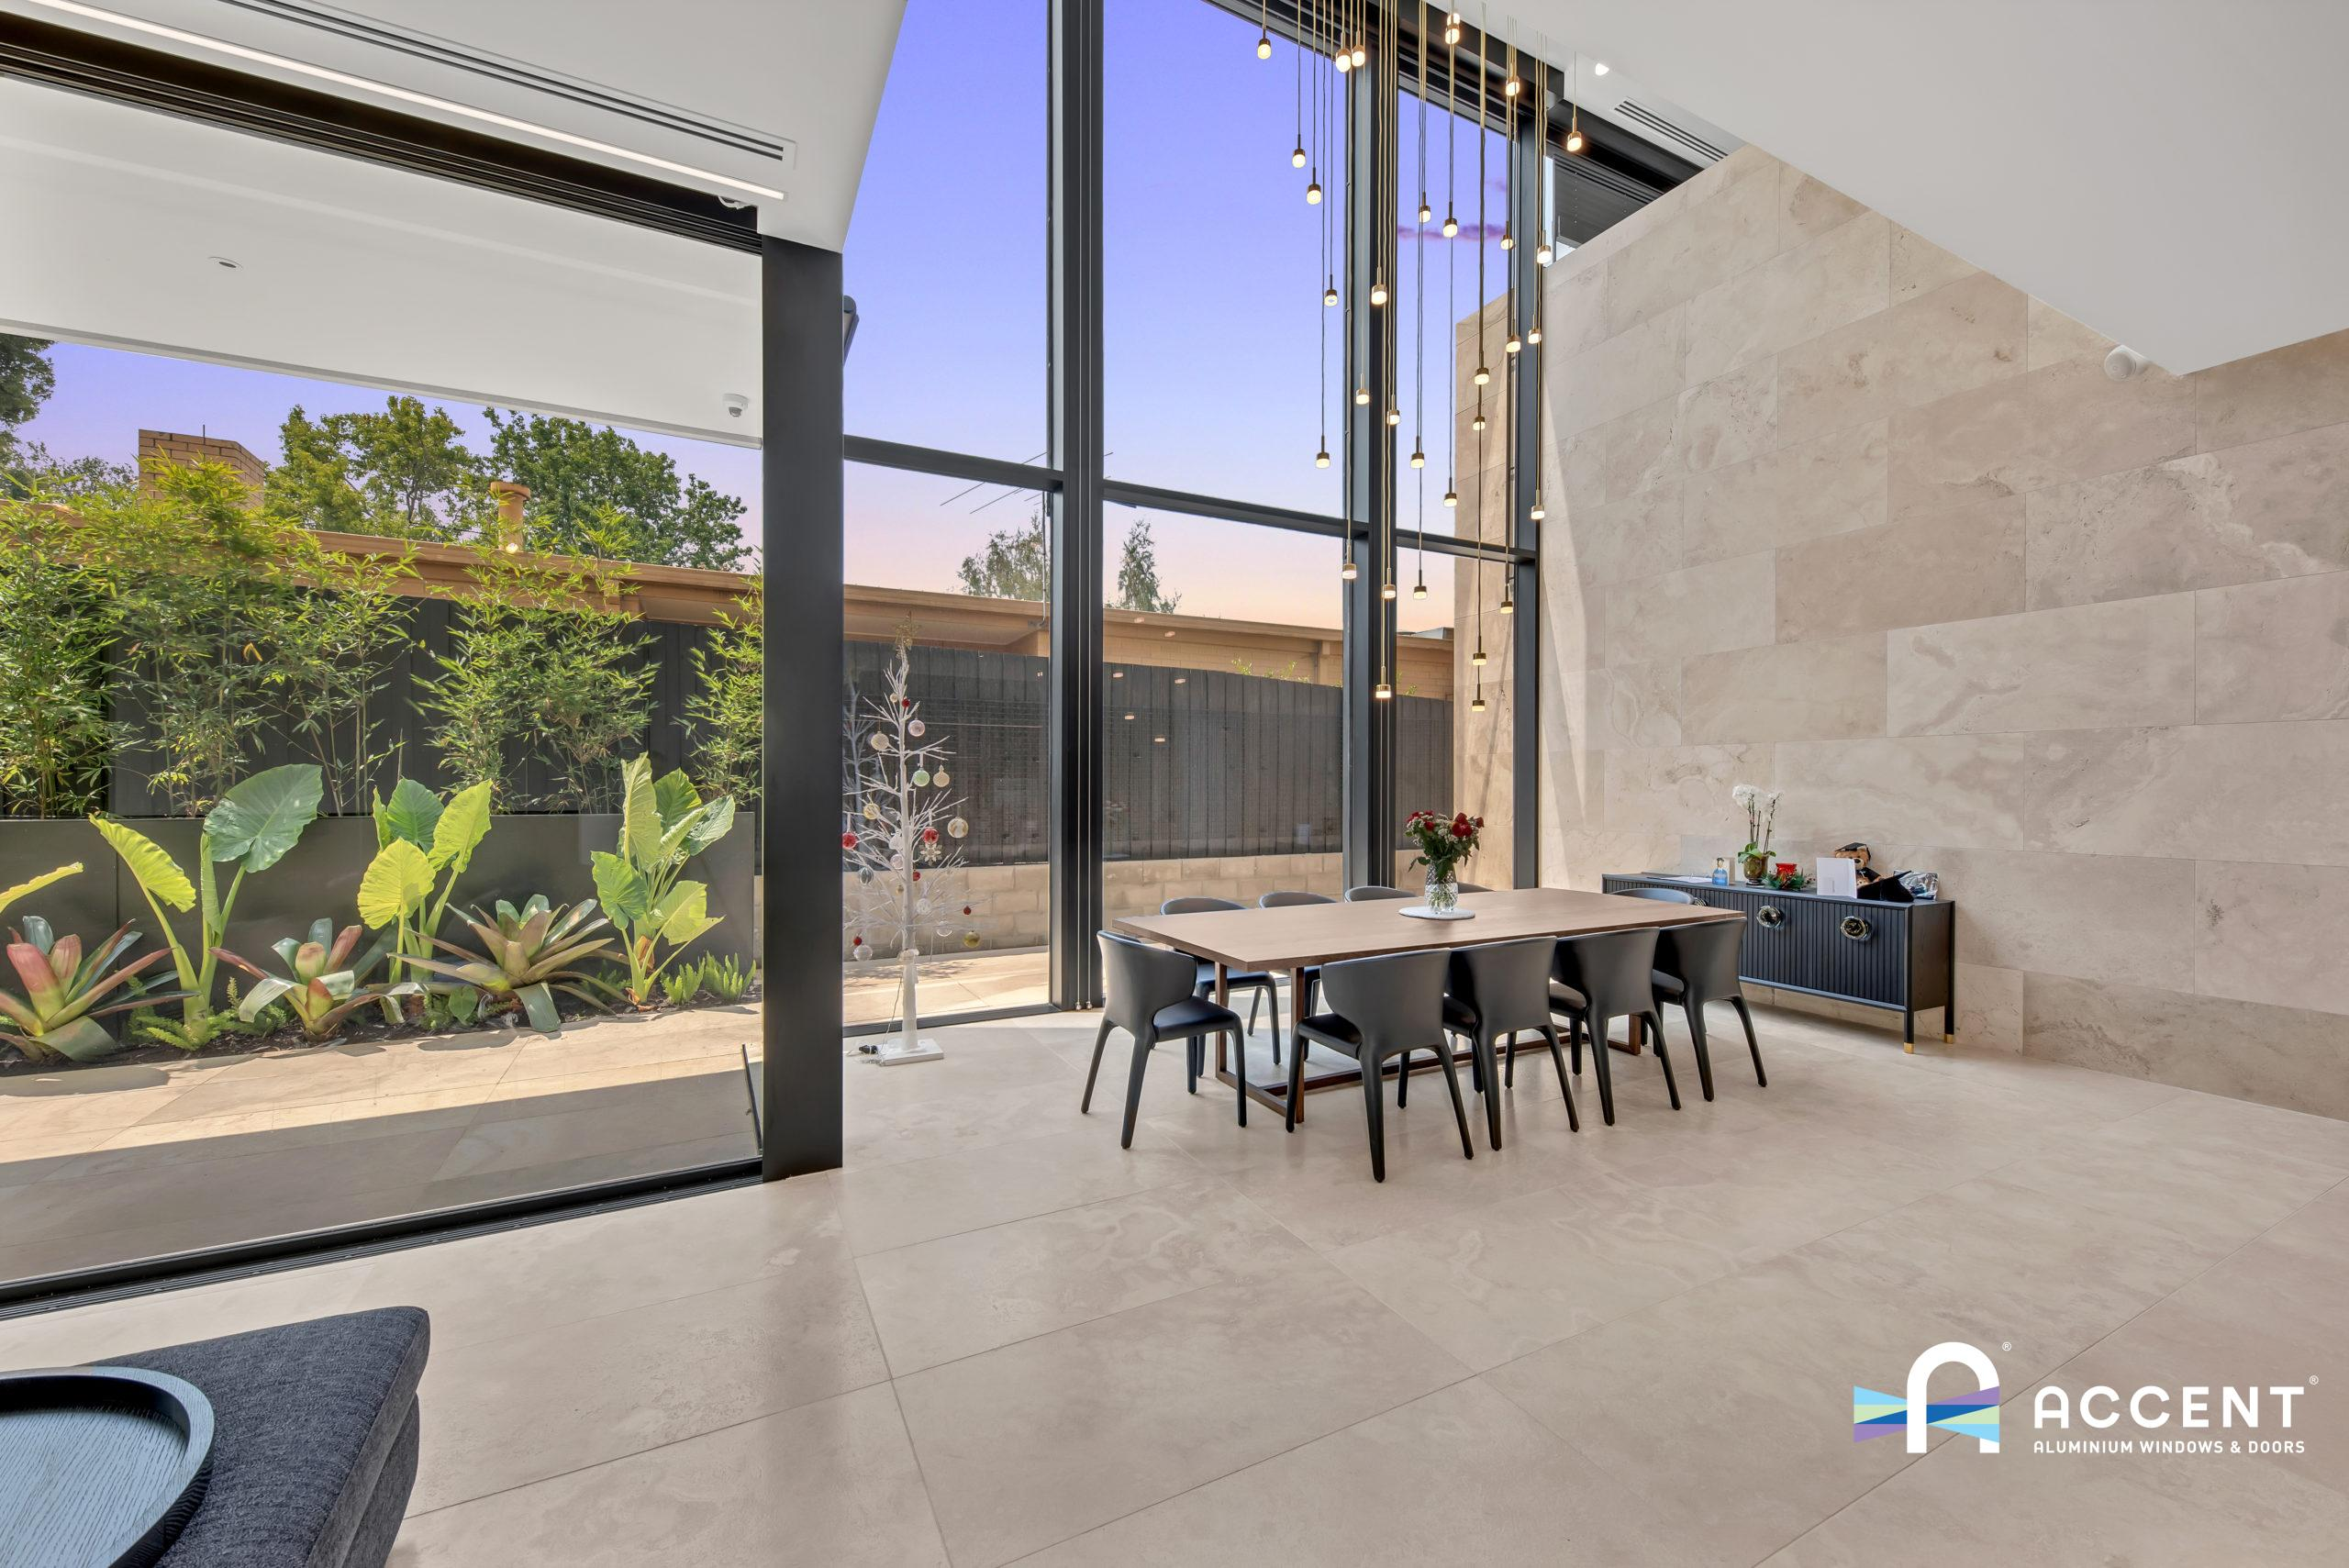 The Impact Of Curtain Wall Windows on Your Interior